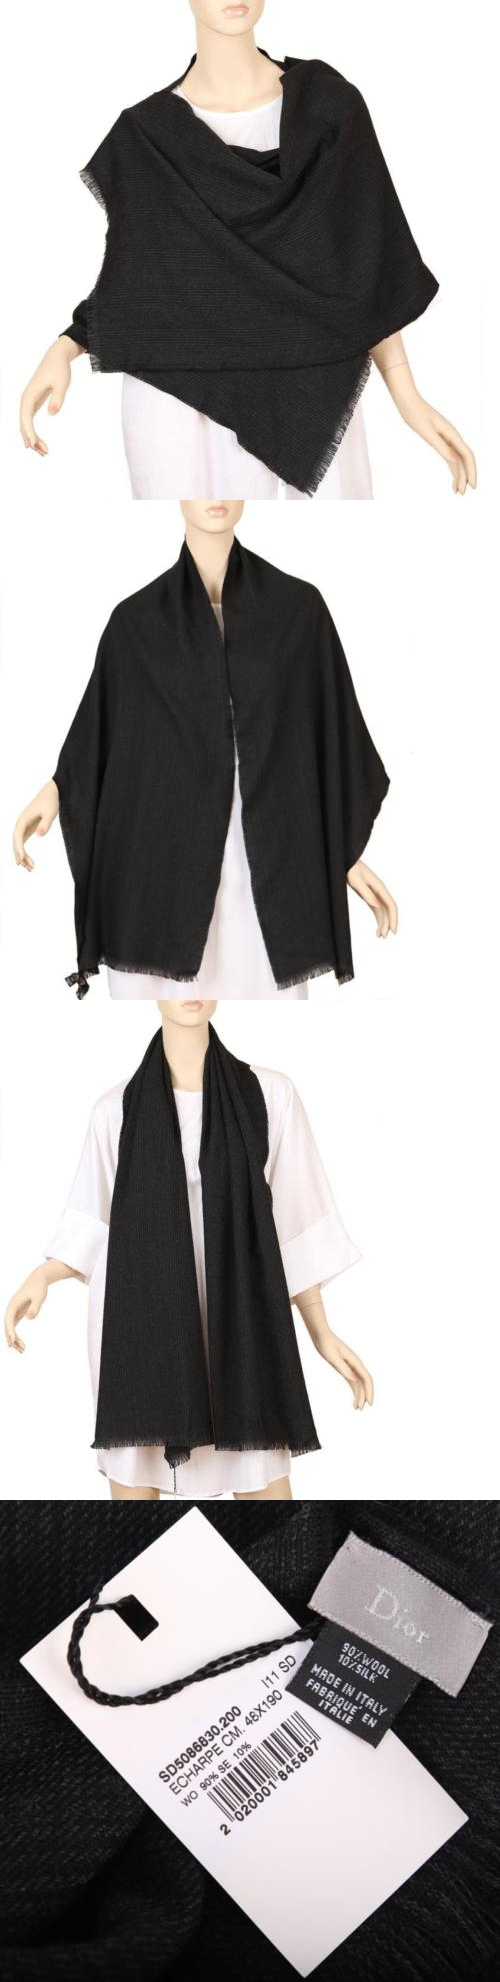 Scarves and Bandanas 169281: New Dior Super Soft Black Wool Silk Oversized Shawl Wrap Scarf Unisex -> BUY IT NOW ONLY: $70 on eBay!